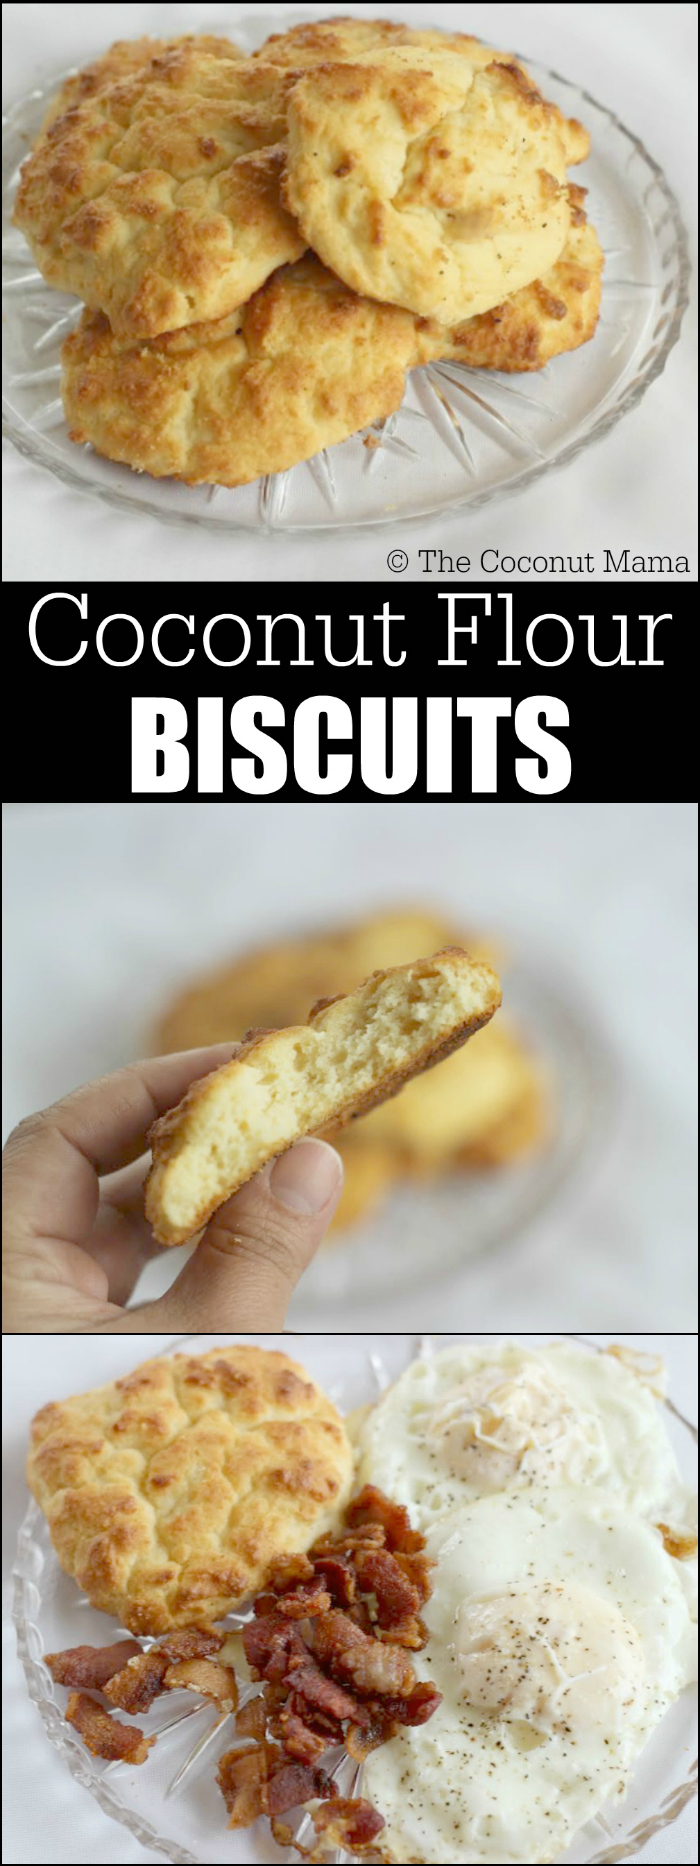 Super Healthy Low Carb Coconut Flour Biscuits